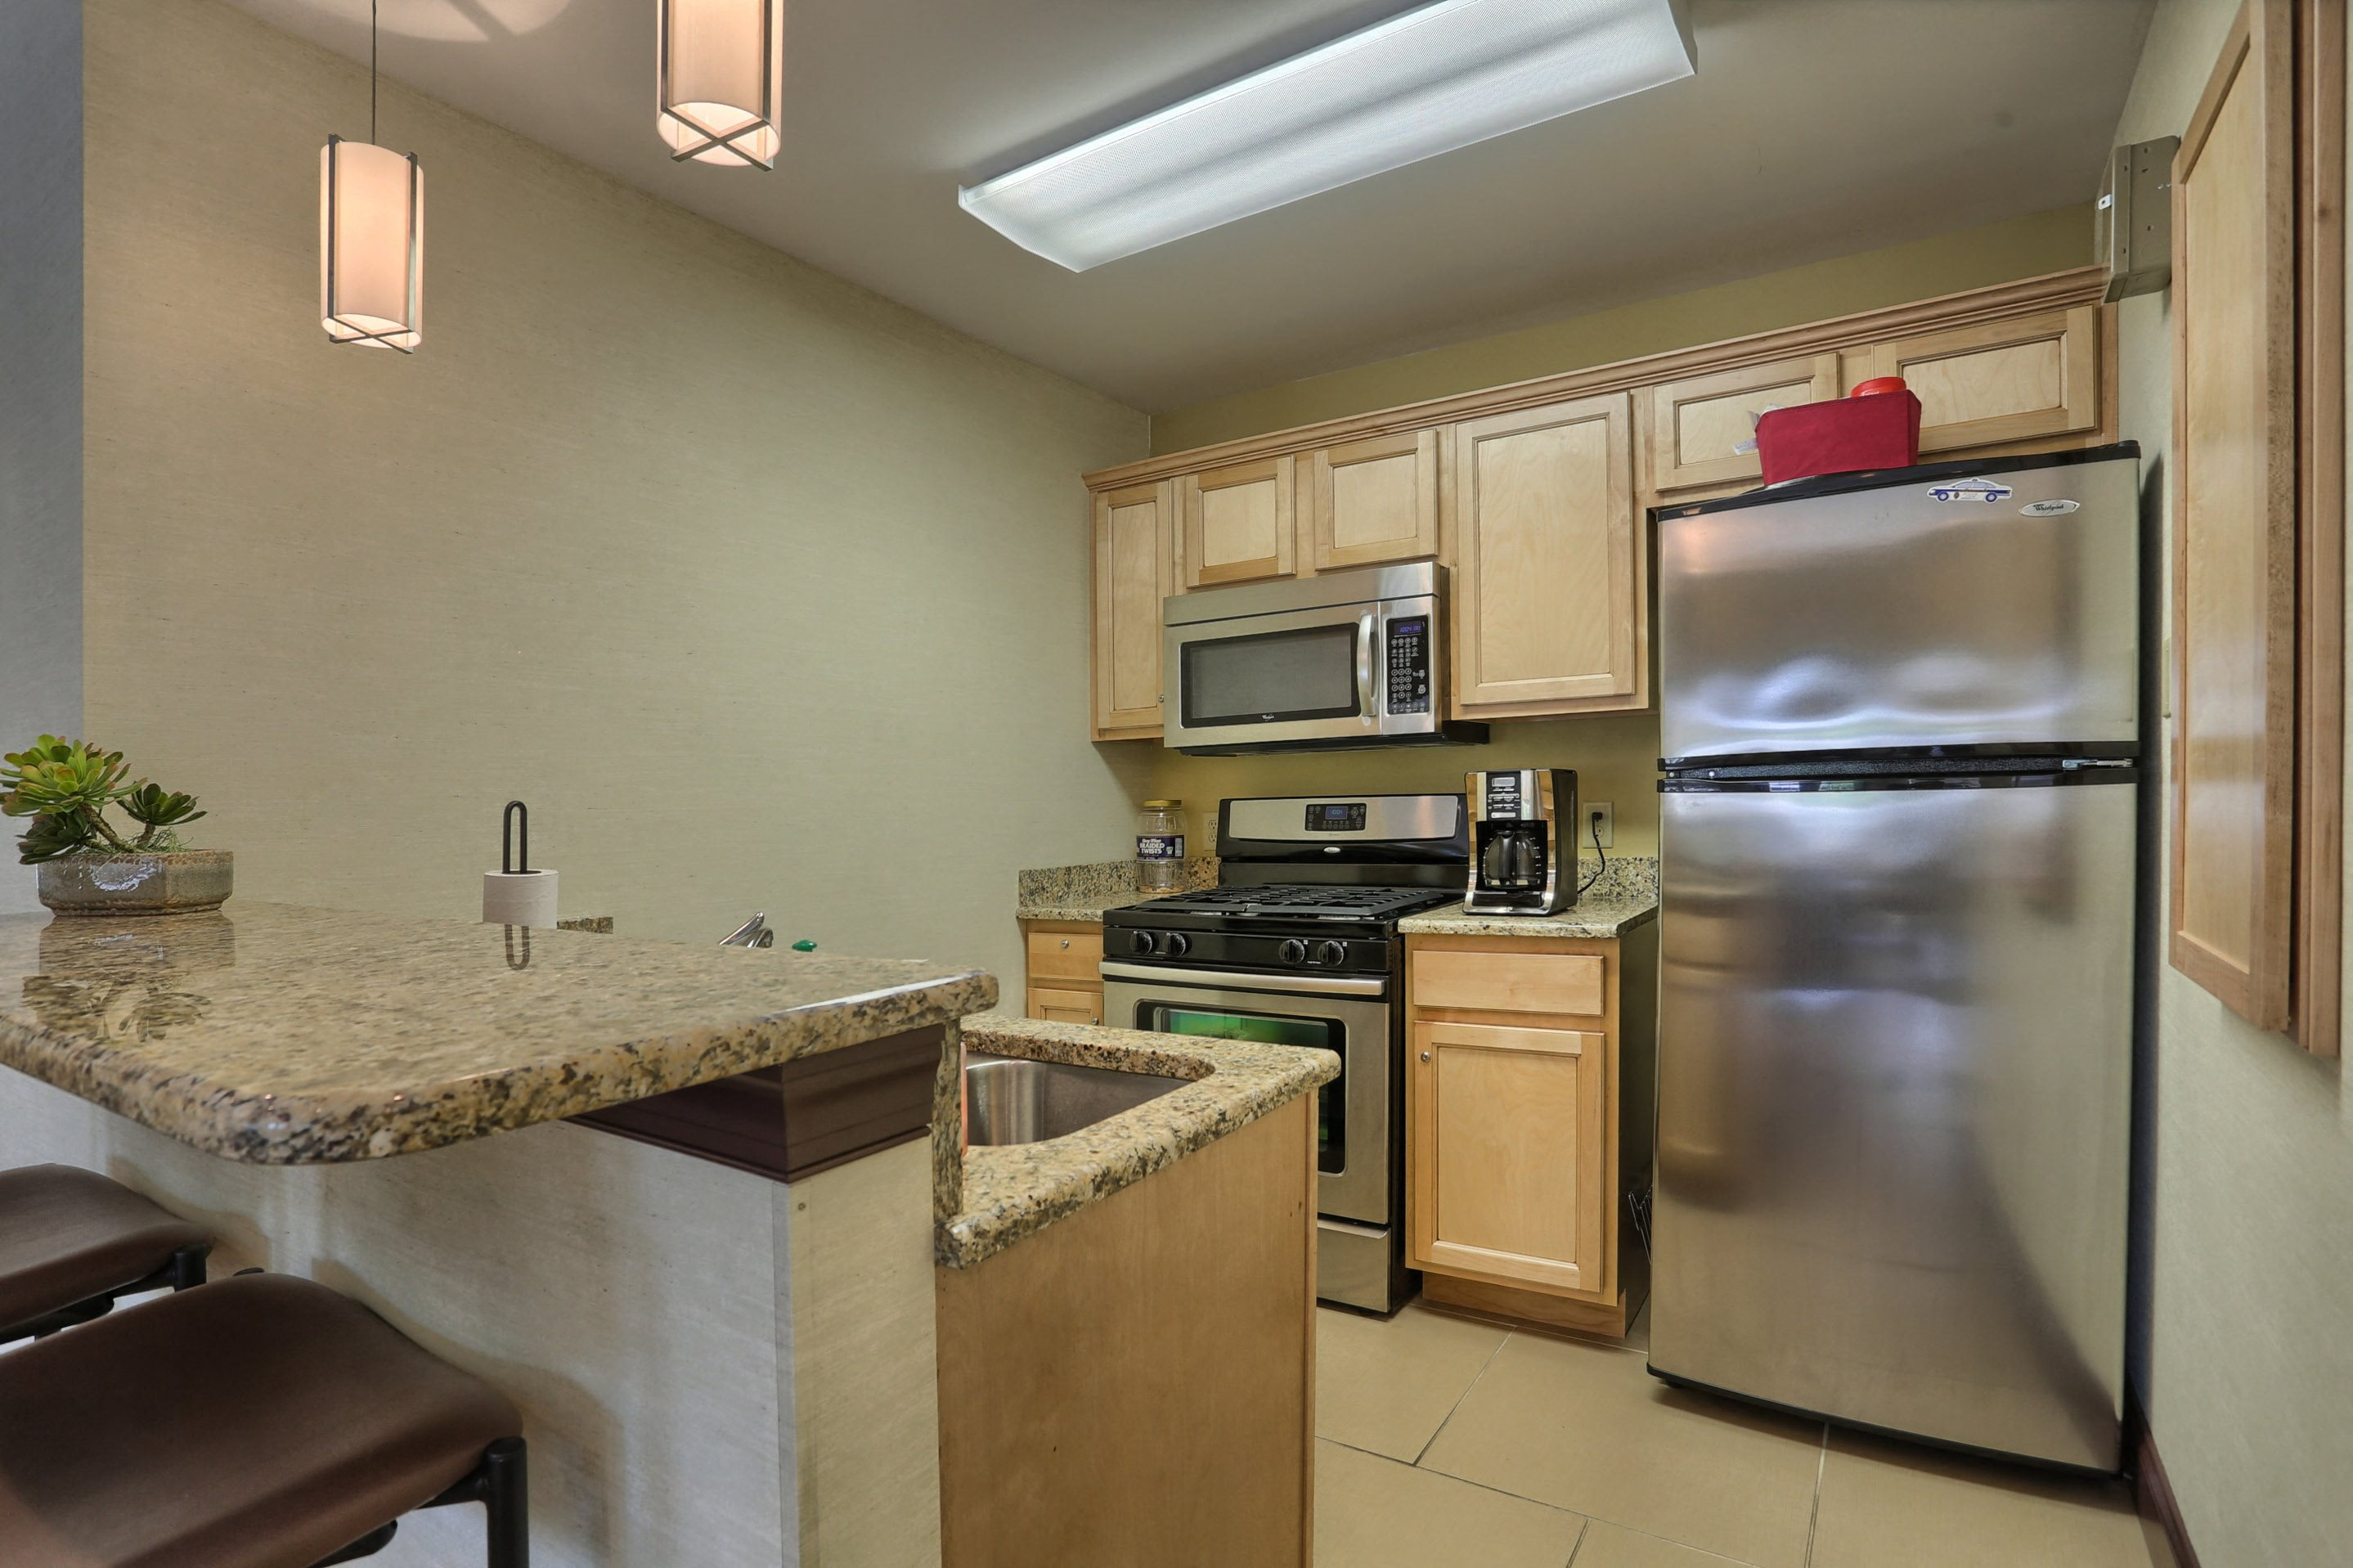 Treeview Apartments Reviews